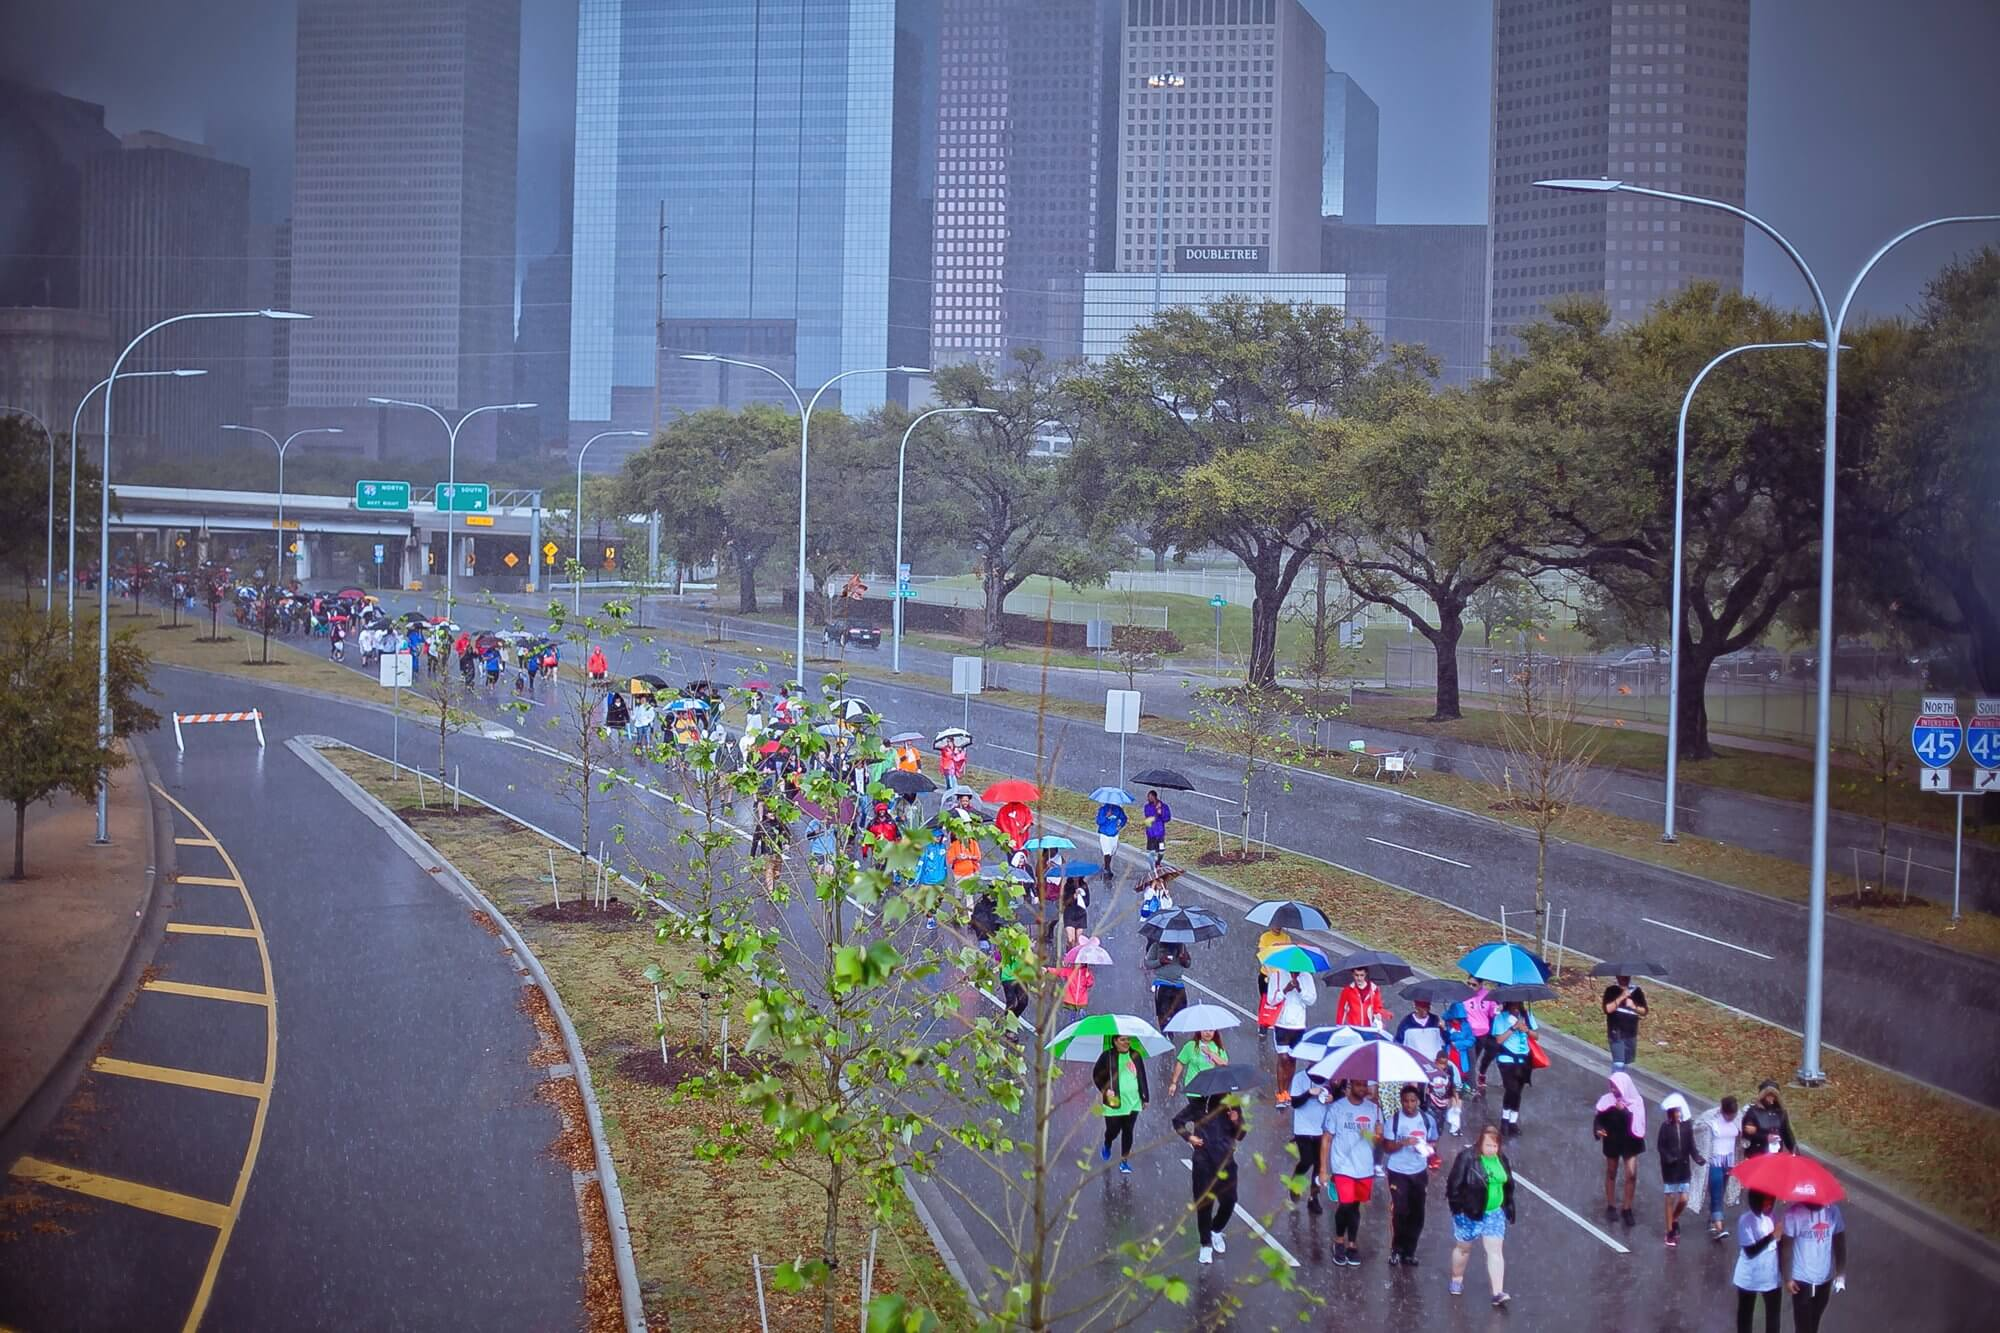 Nearly 3,000 walkers braved the rain to participate in the 28th annual walk. (Photo credit: Morris Malakoff)